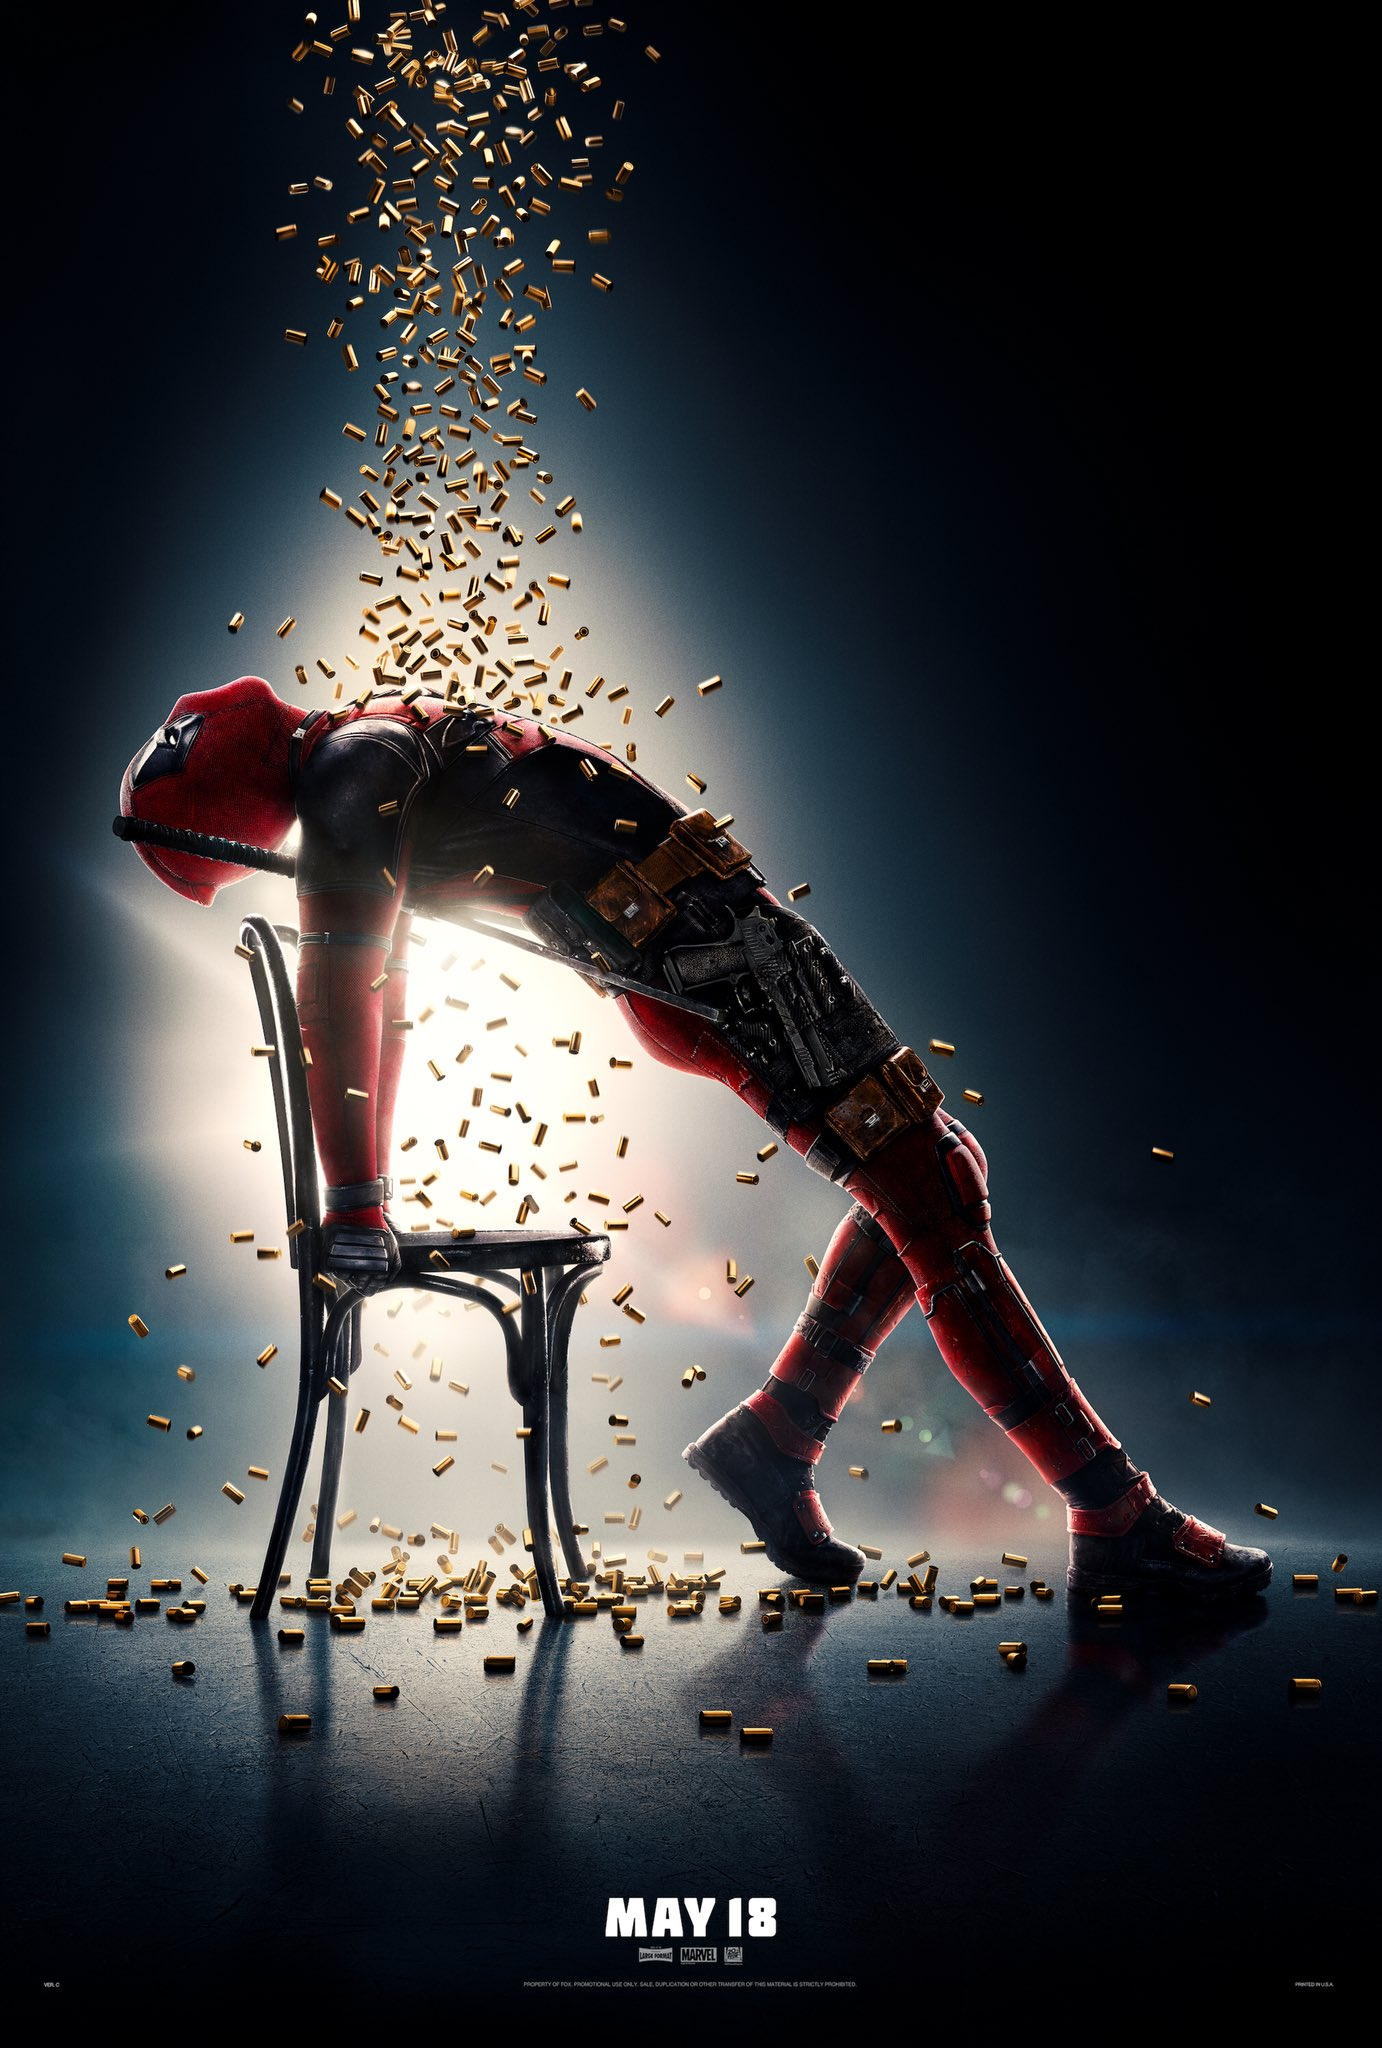 It's time to flash dance with Deadpool in this new poster